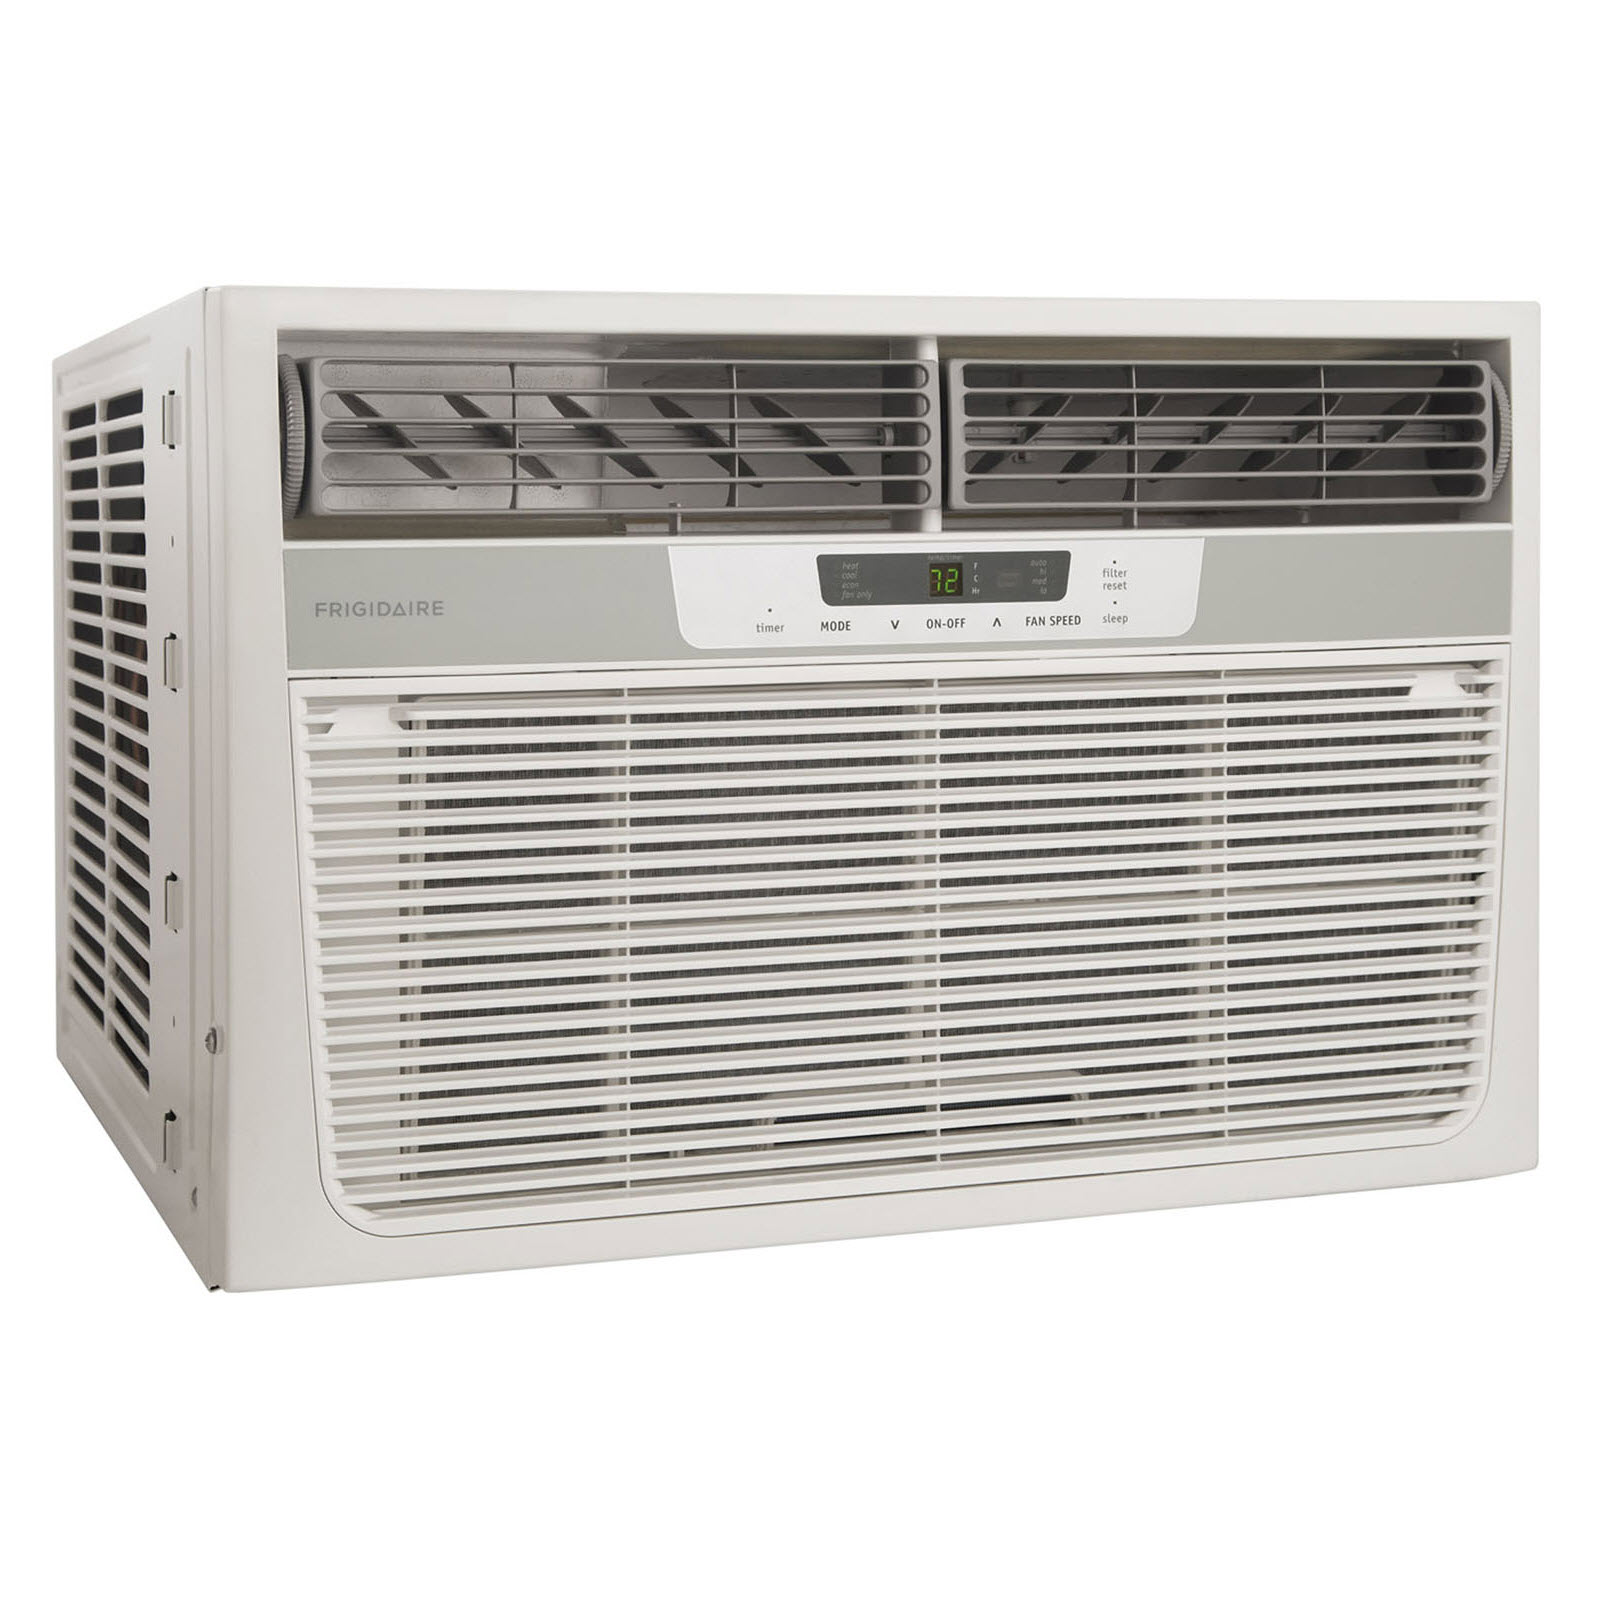 Frigidaire 8,000 BTU 115V Window-Mounted Compact Air Conditioner with 3,500 BTU Supplemental Heat Pump